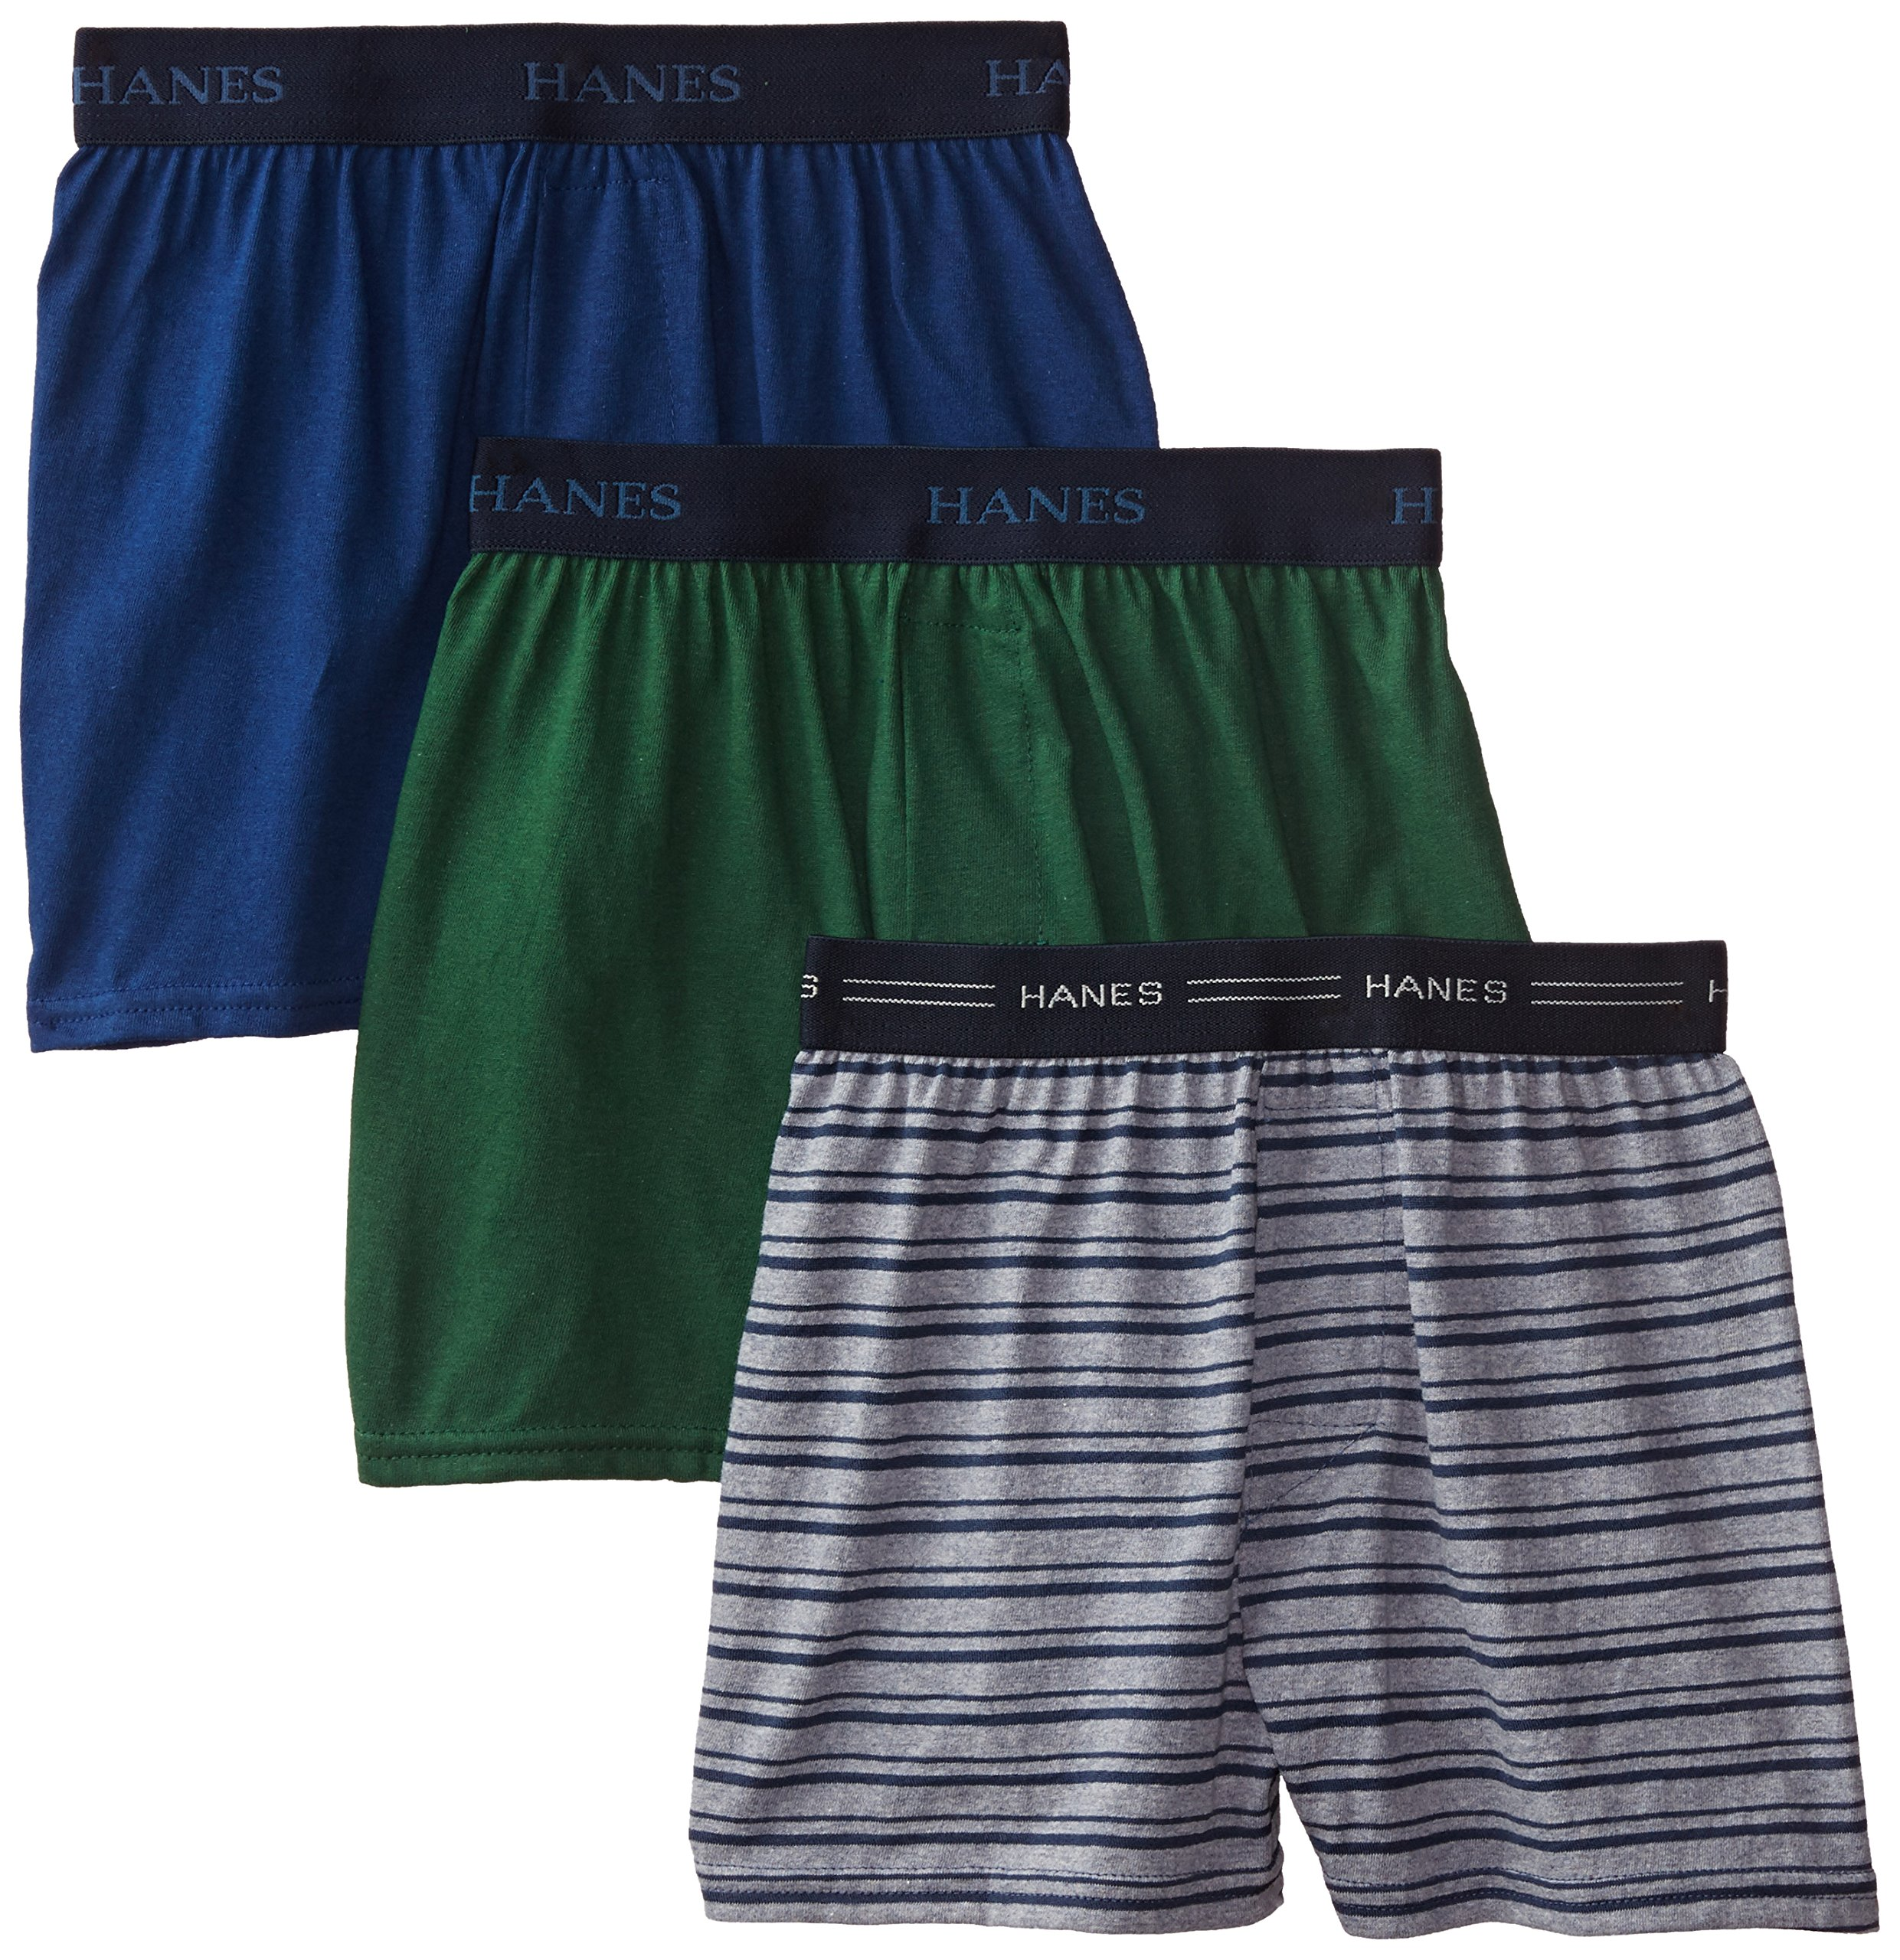 Hanes Boys' 3 Pack Ultimate Comfort Flex Solid Knit Boxer, Assorted, Small